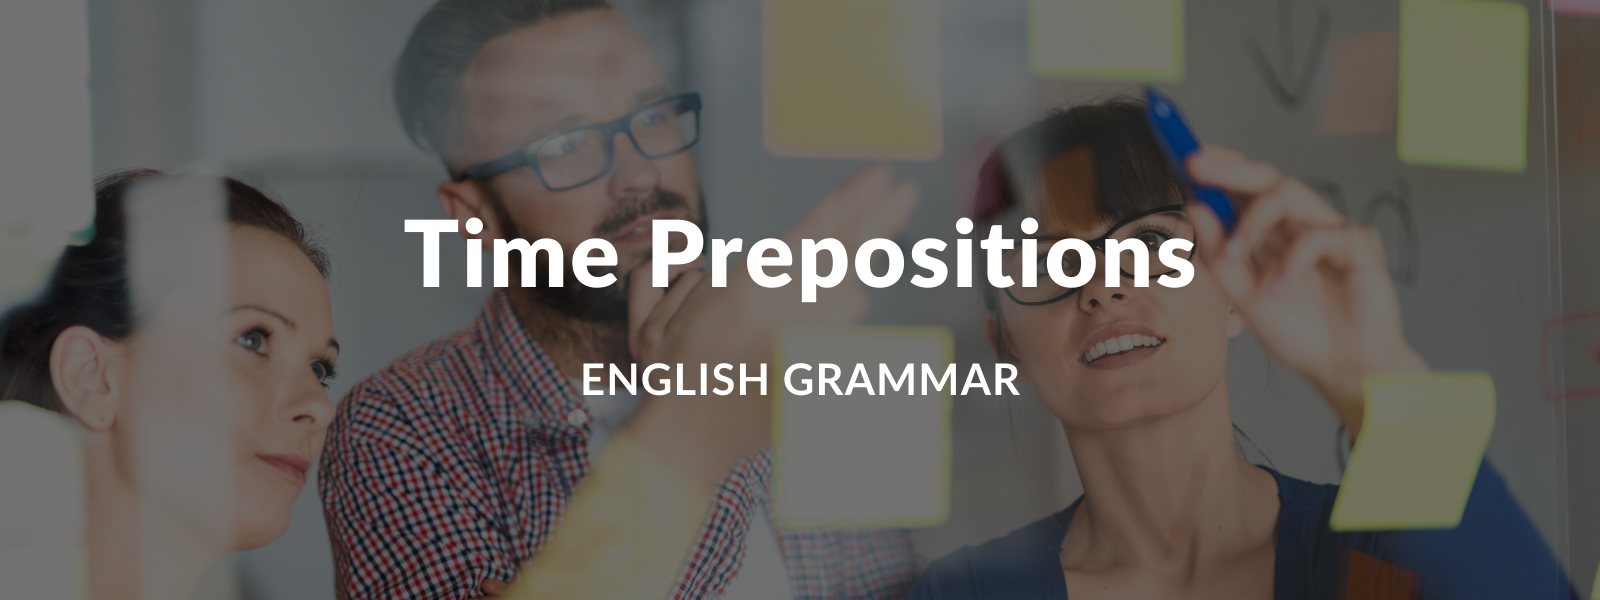 Prepositions of time: IN, ON, AT - Explanation and exercises